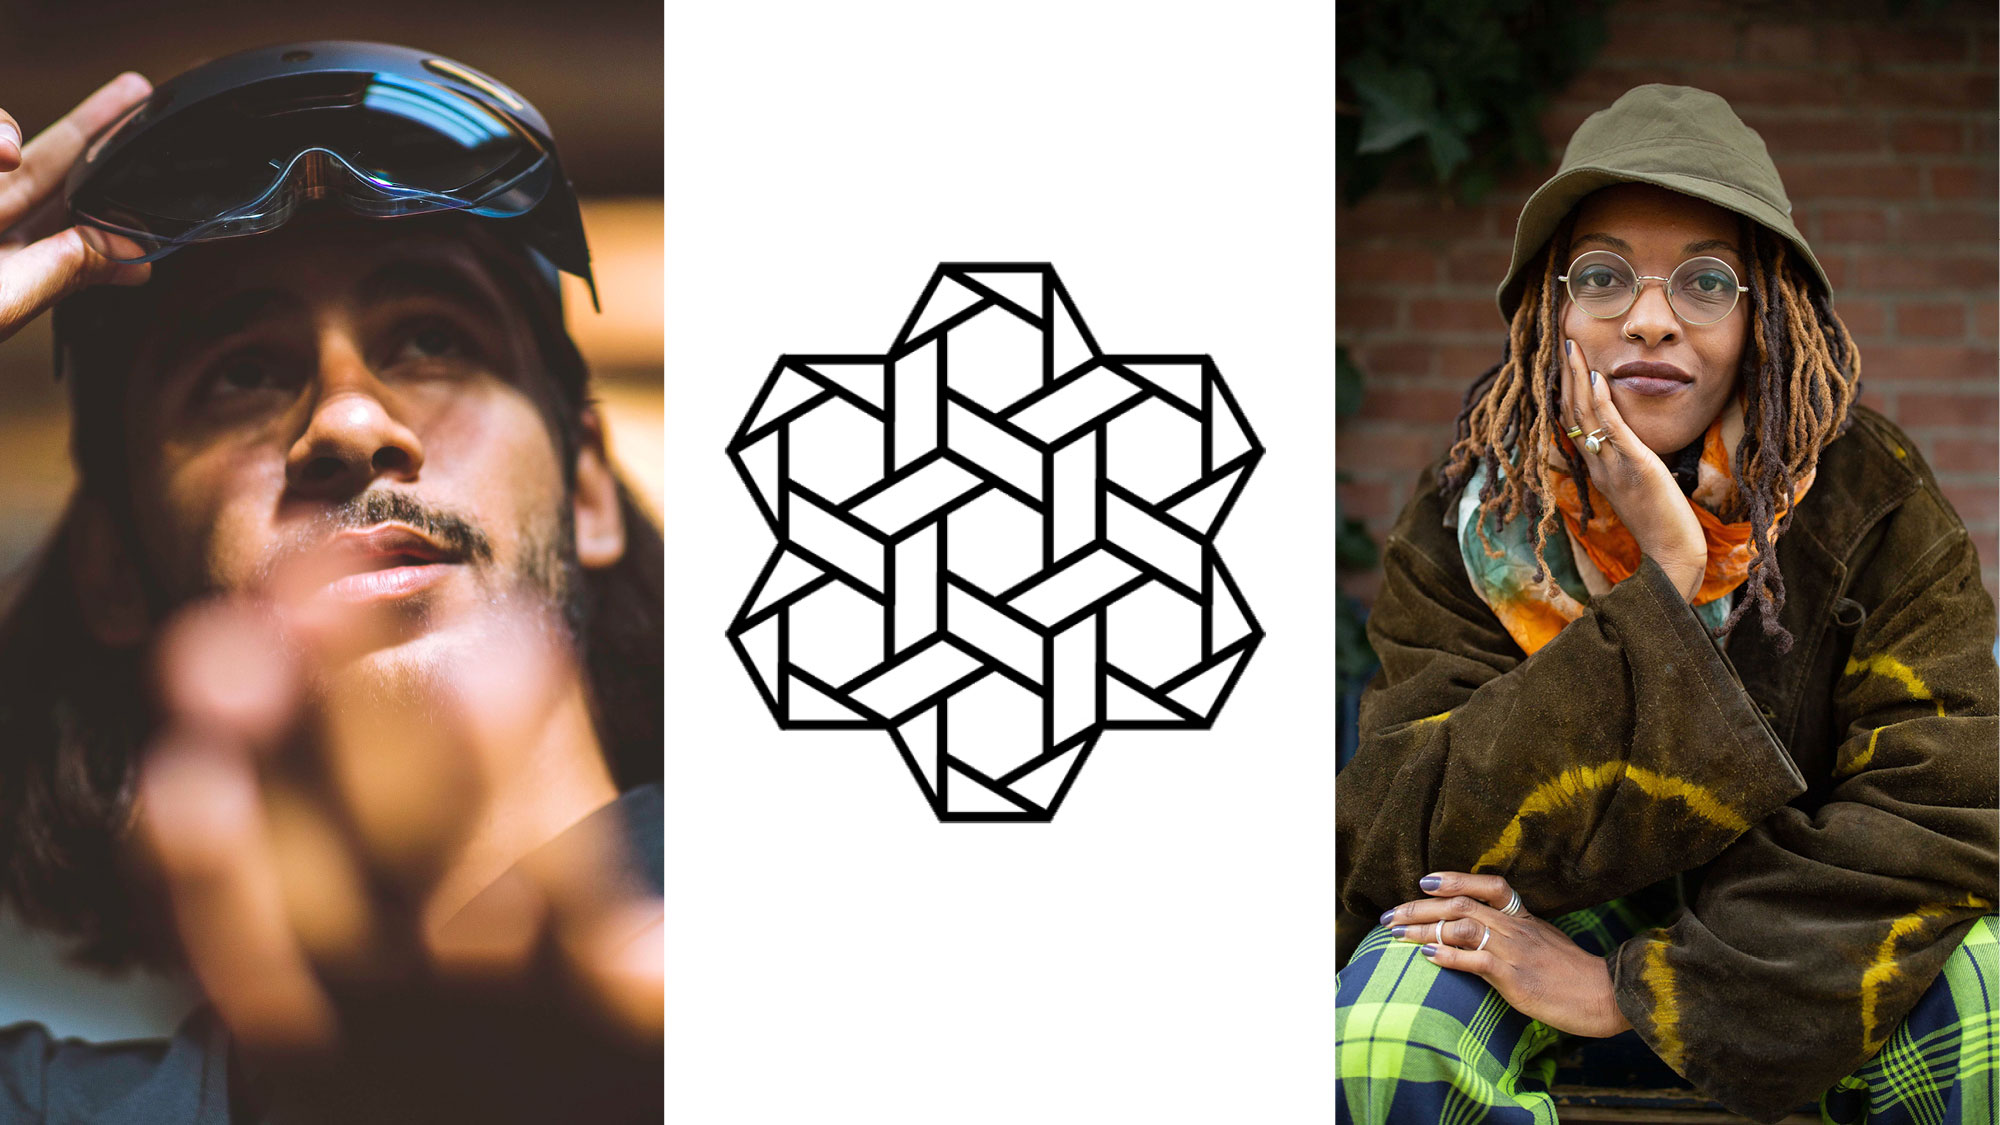 m ss ng p eces Welcomes Three New Signings to Immersive Roster | STASH MAGAZINE